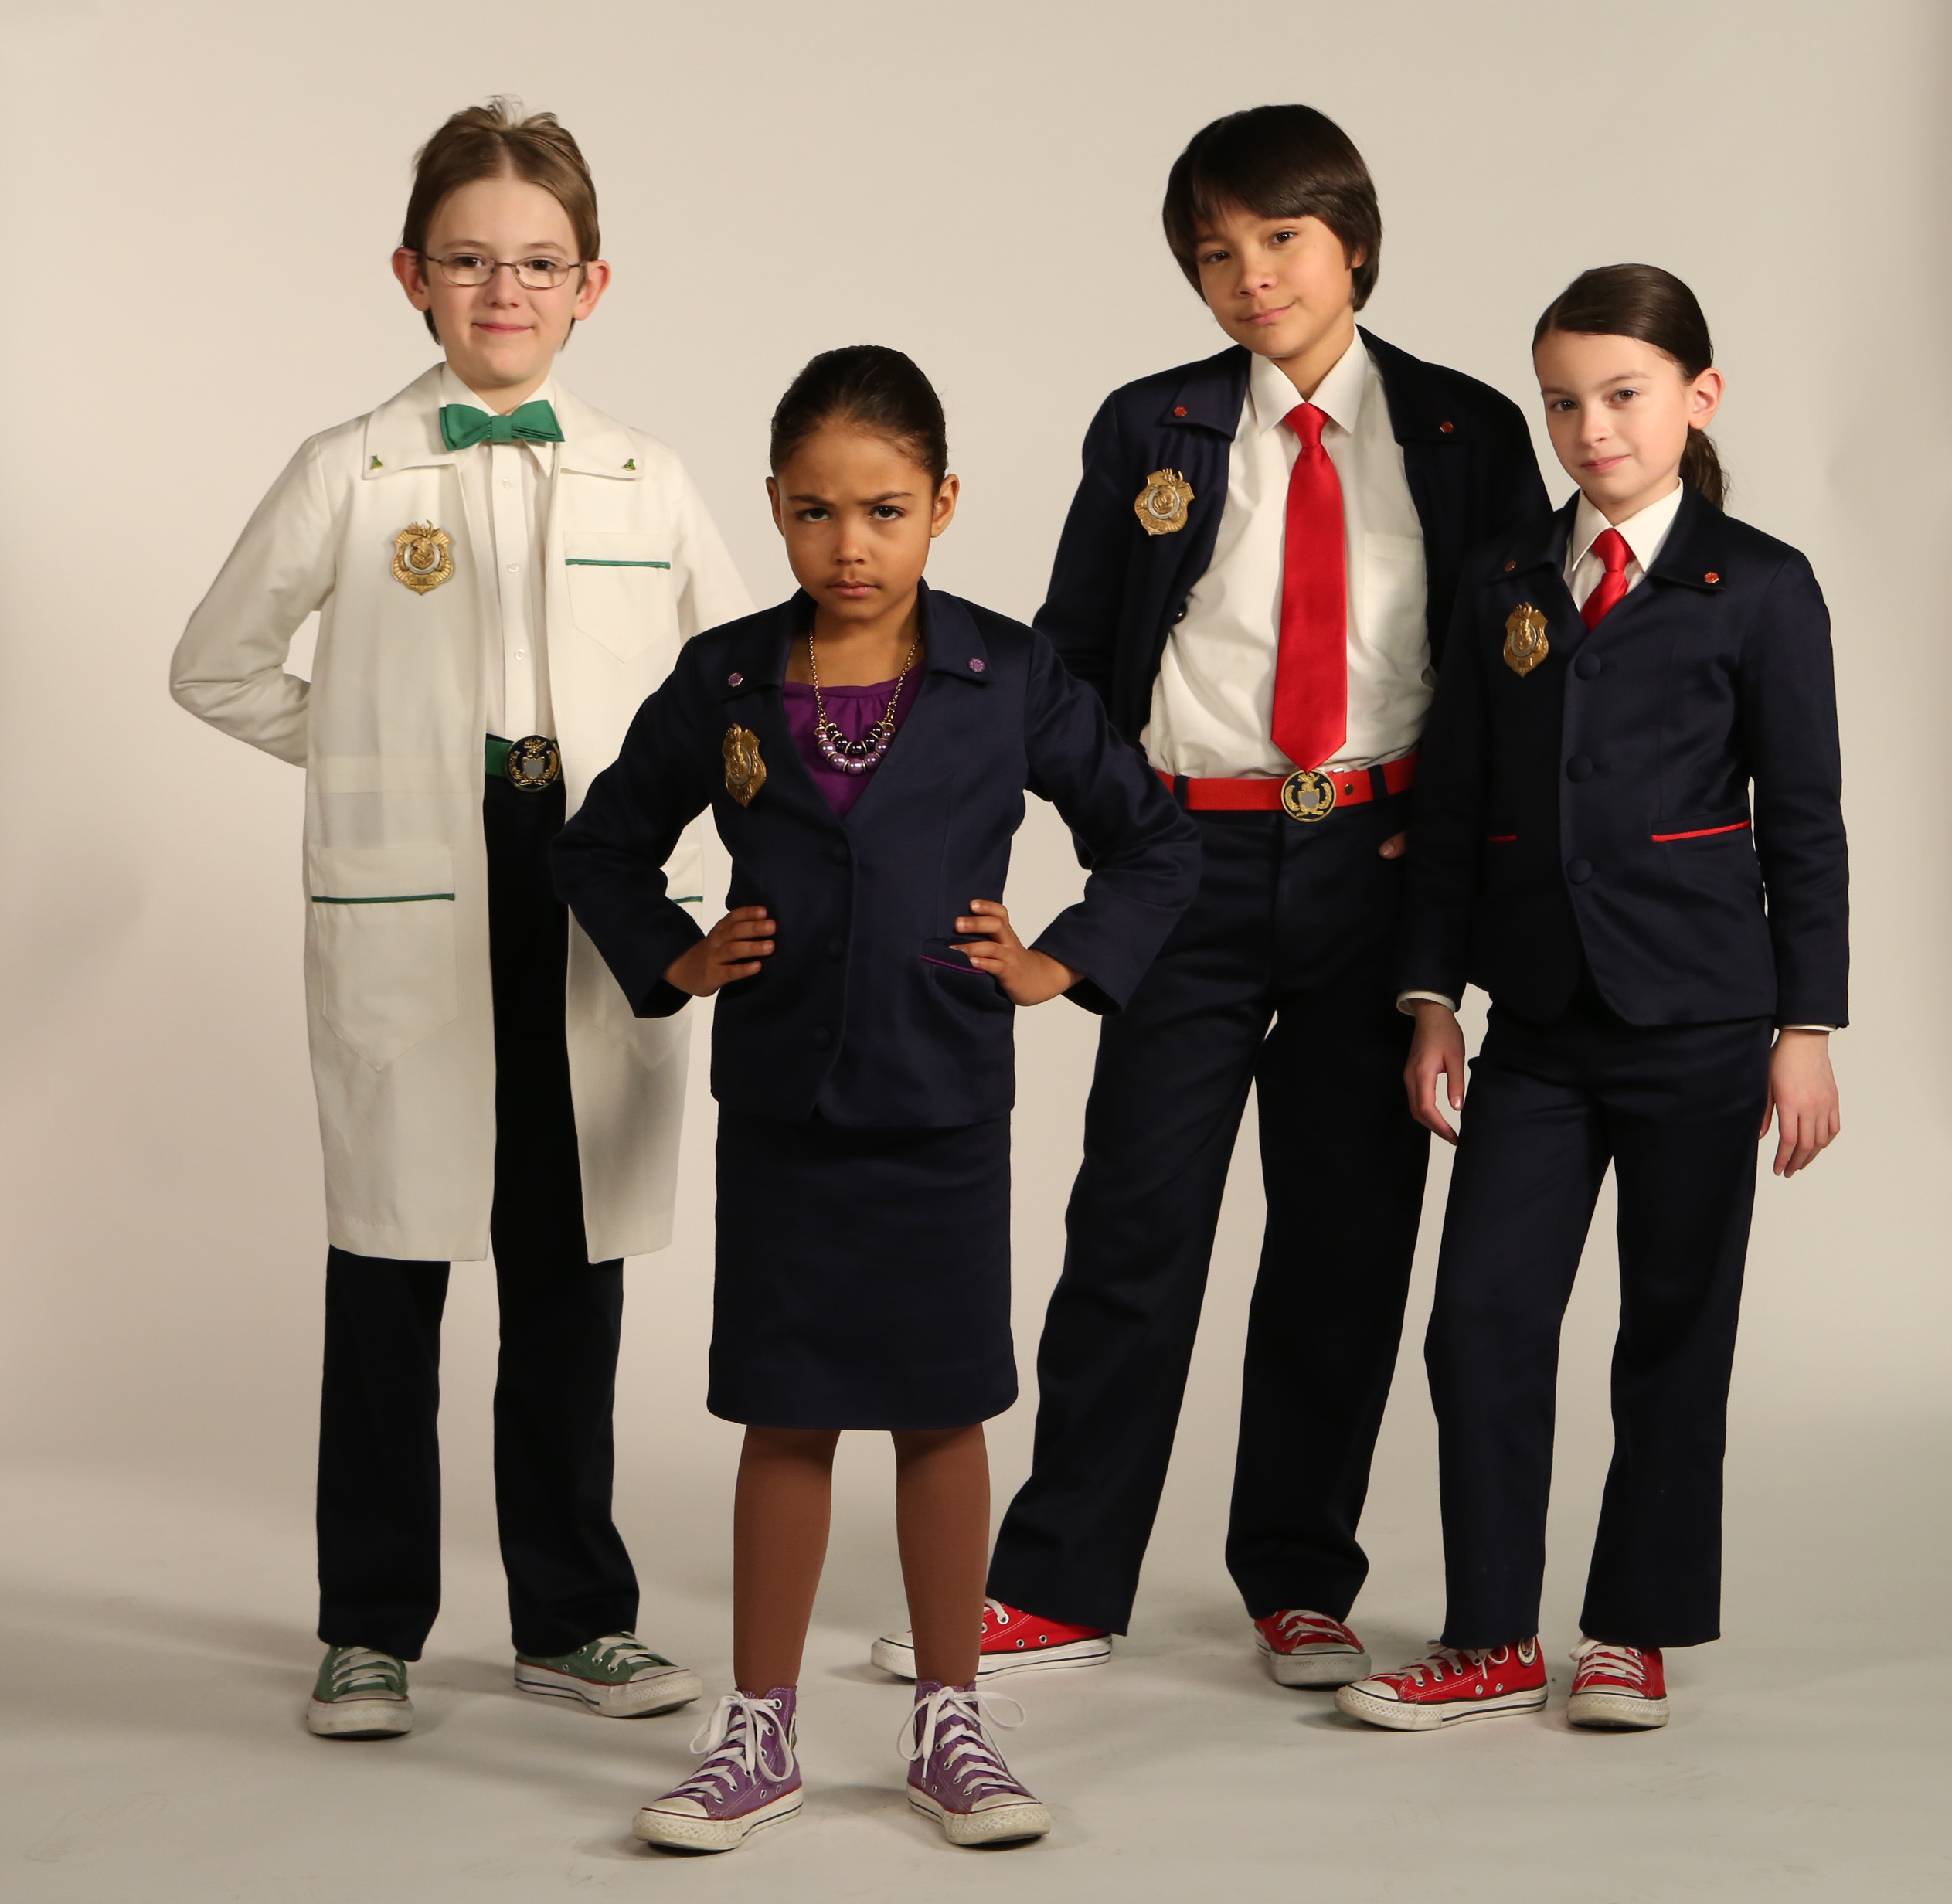 New Live-Action Series Odd Squad Premieres 11/26 on PBS Kids